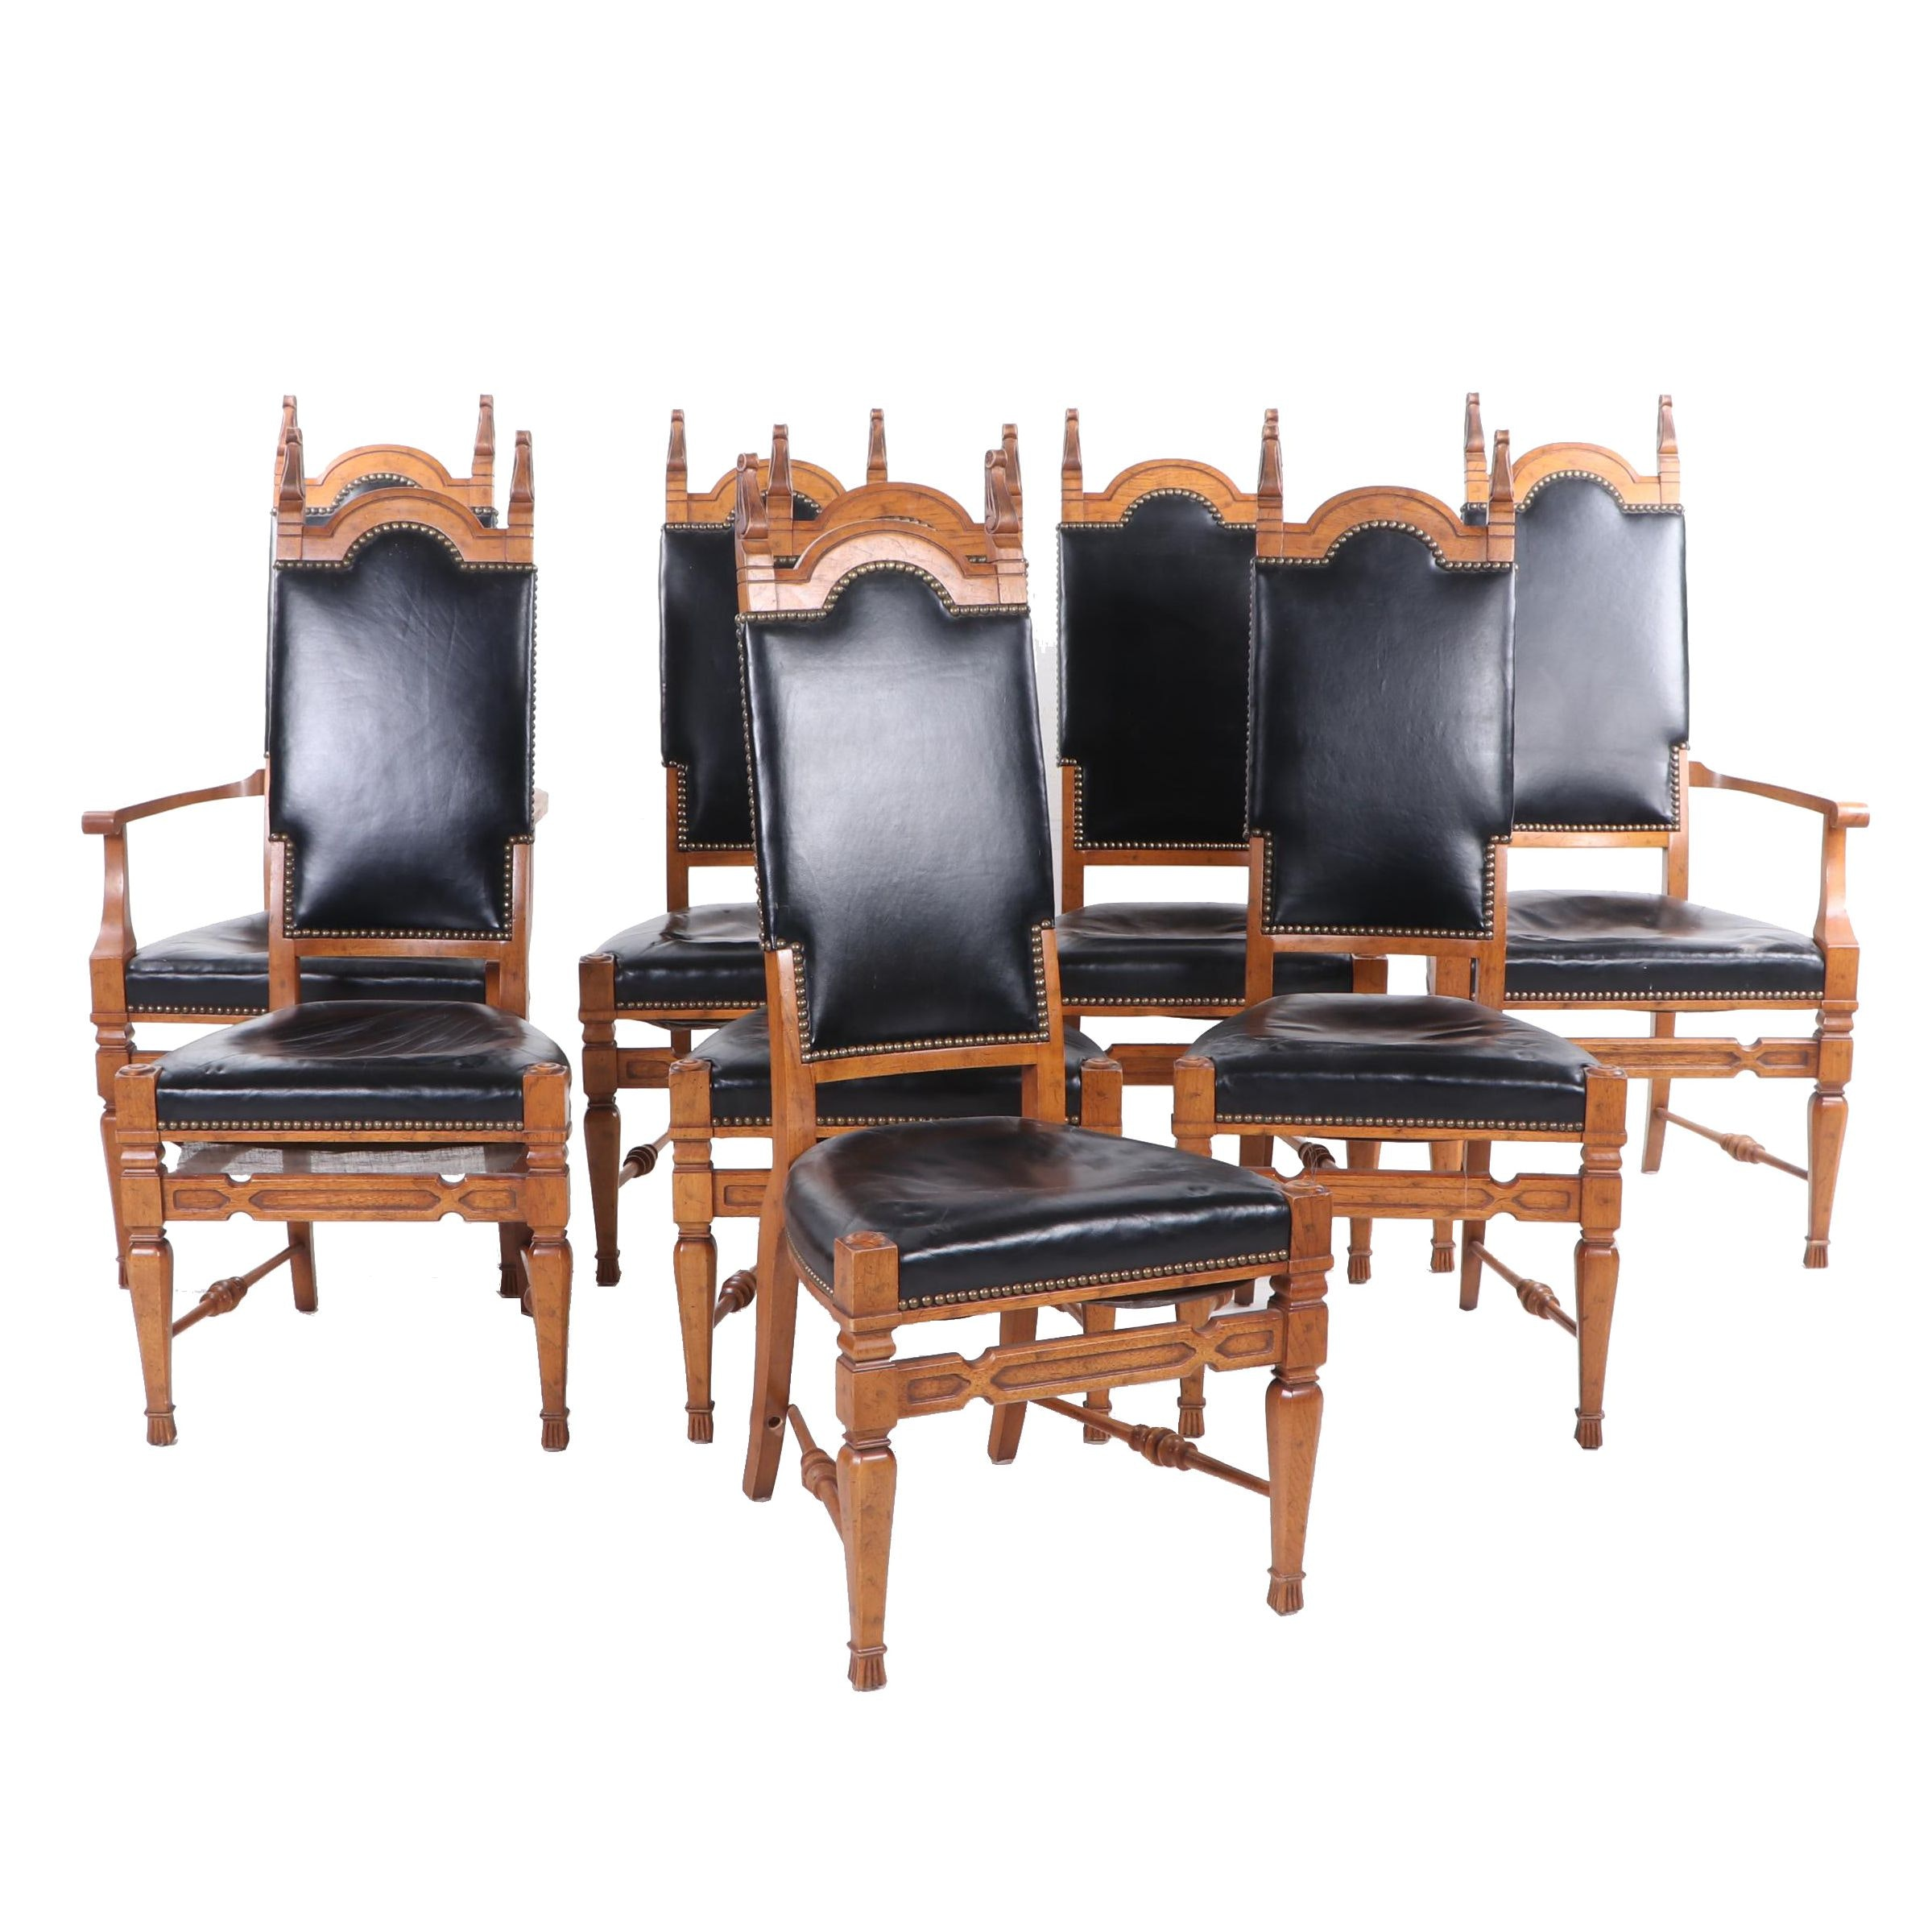 Renaissance Revival Style Oak Dining Chairs, Circa 1970